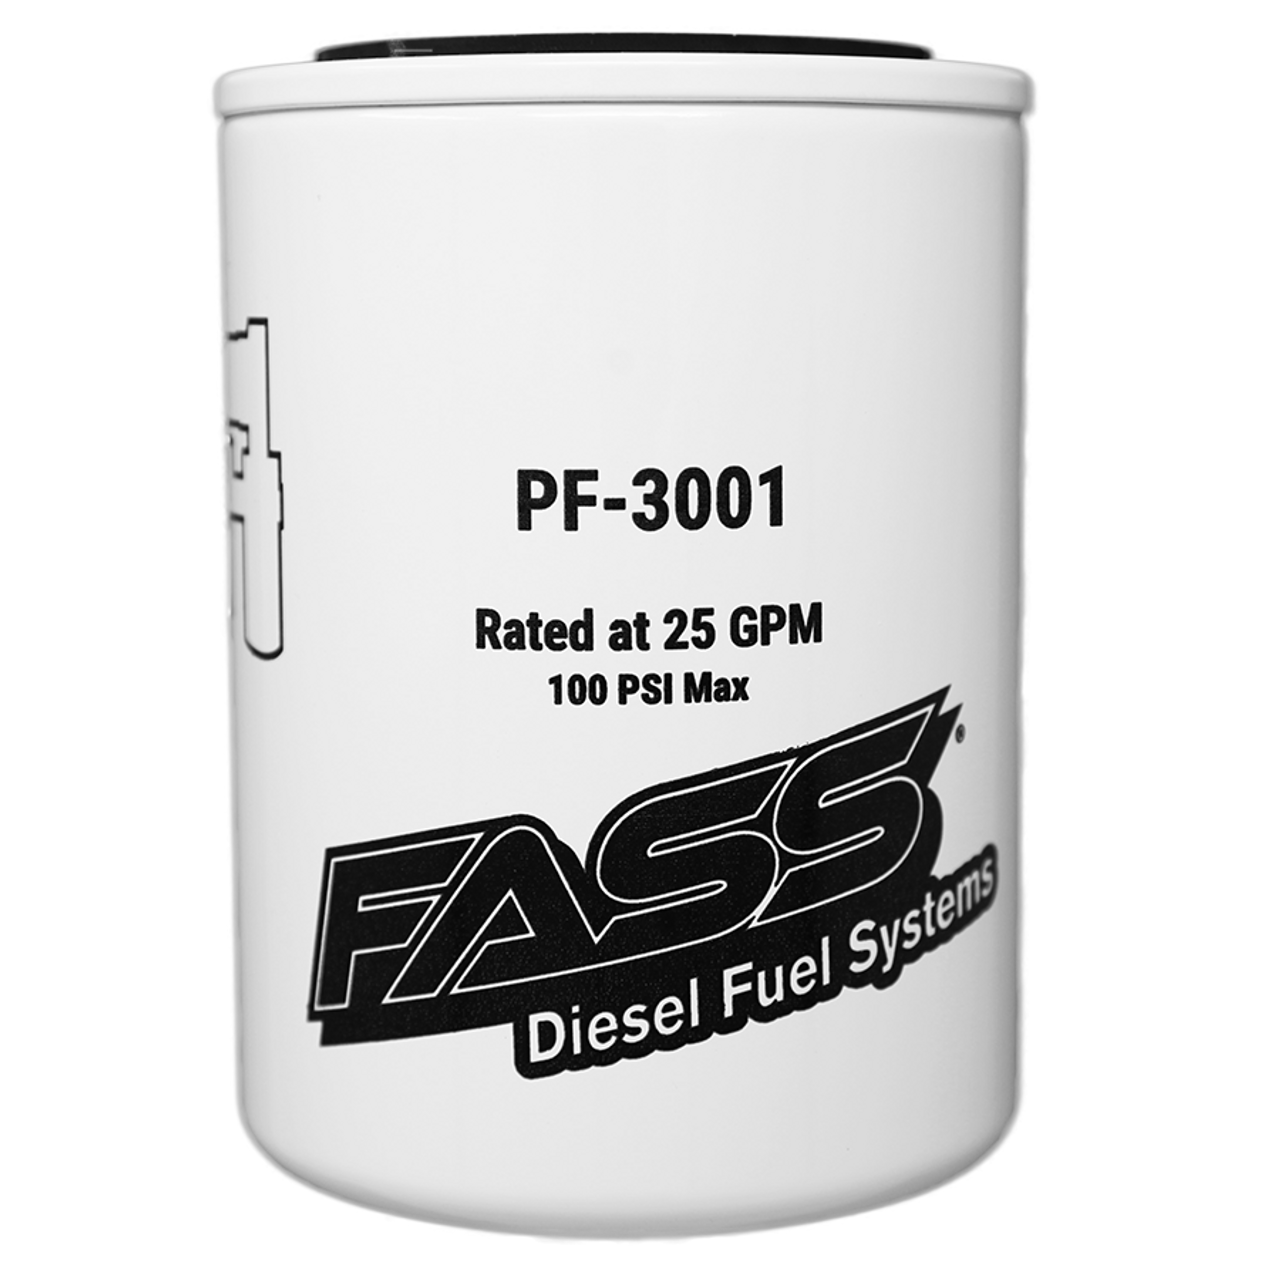 FASS Fuel System HD Series Replacement 3 Micron Fuel Filter FF-1003